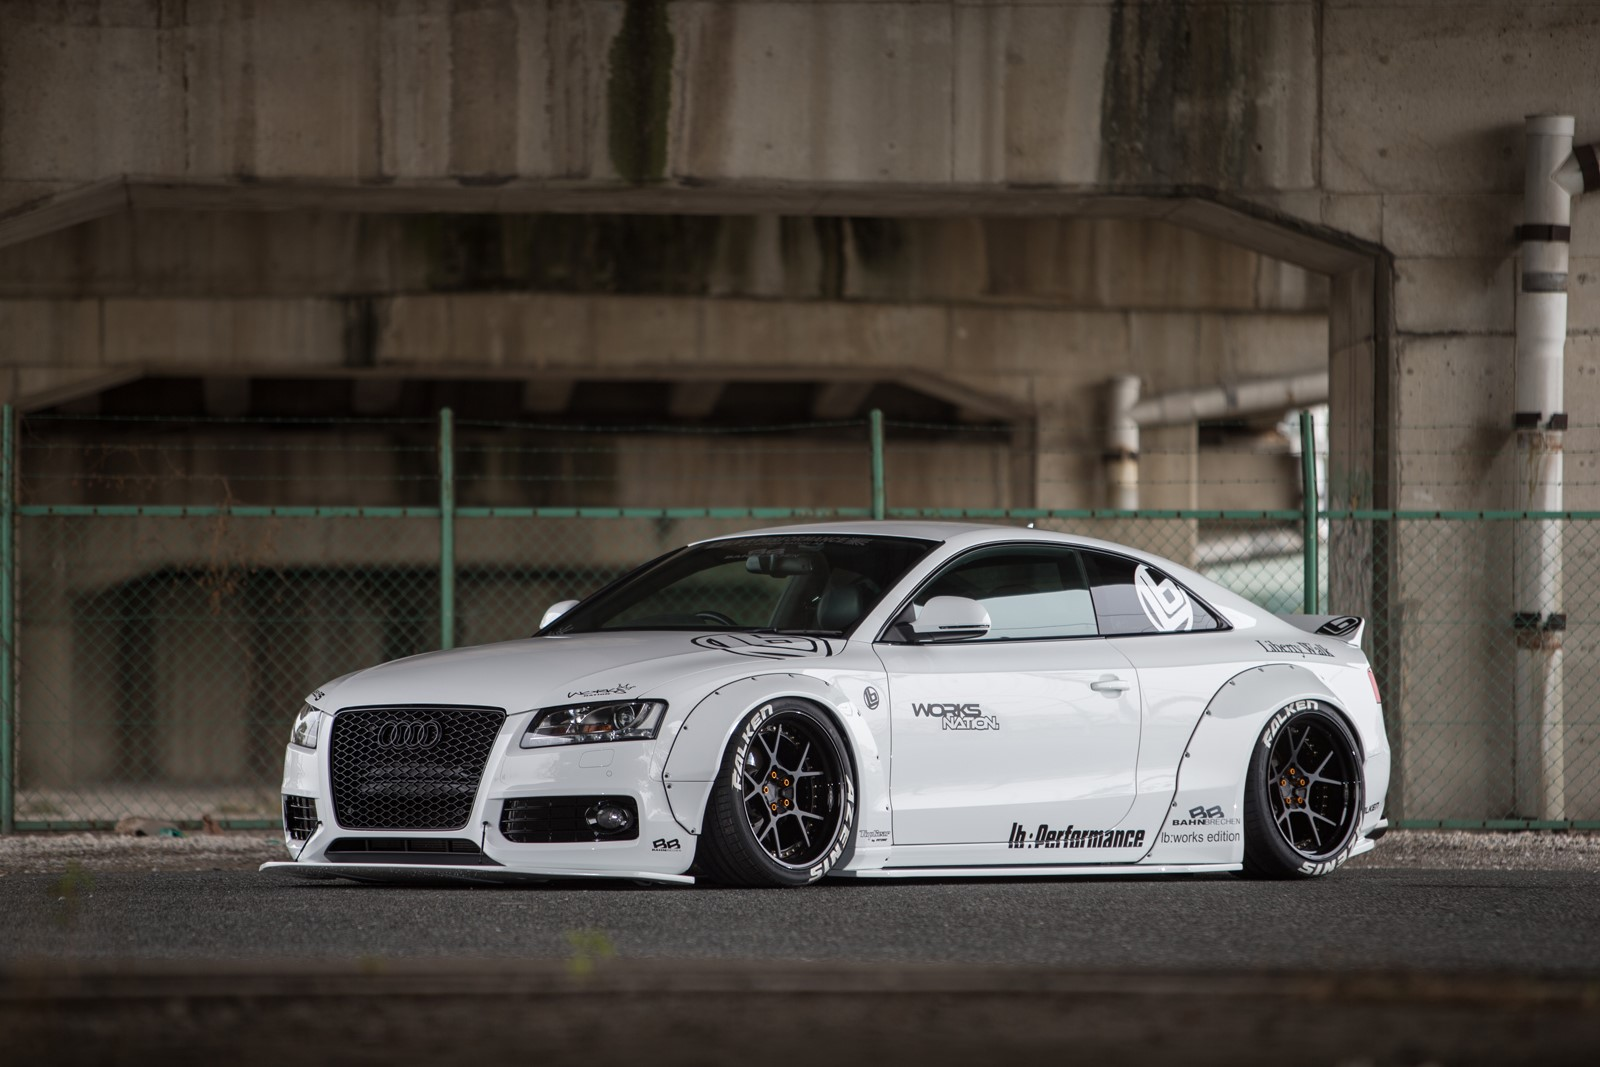 audi a5 with a liberty walk body kit vehiclejar blog. Black Bedroom Furniture Sets. Home Design Ideas